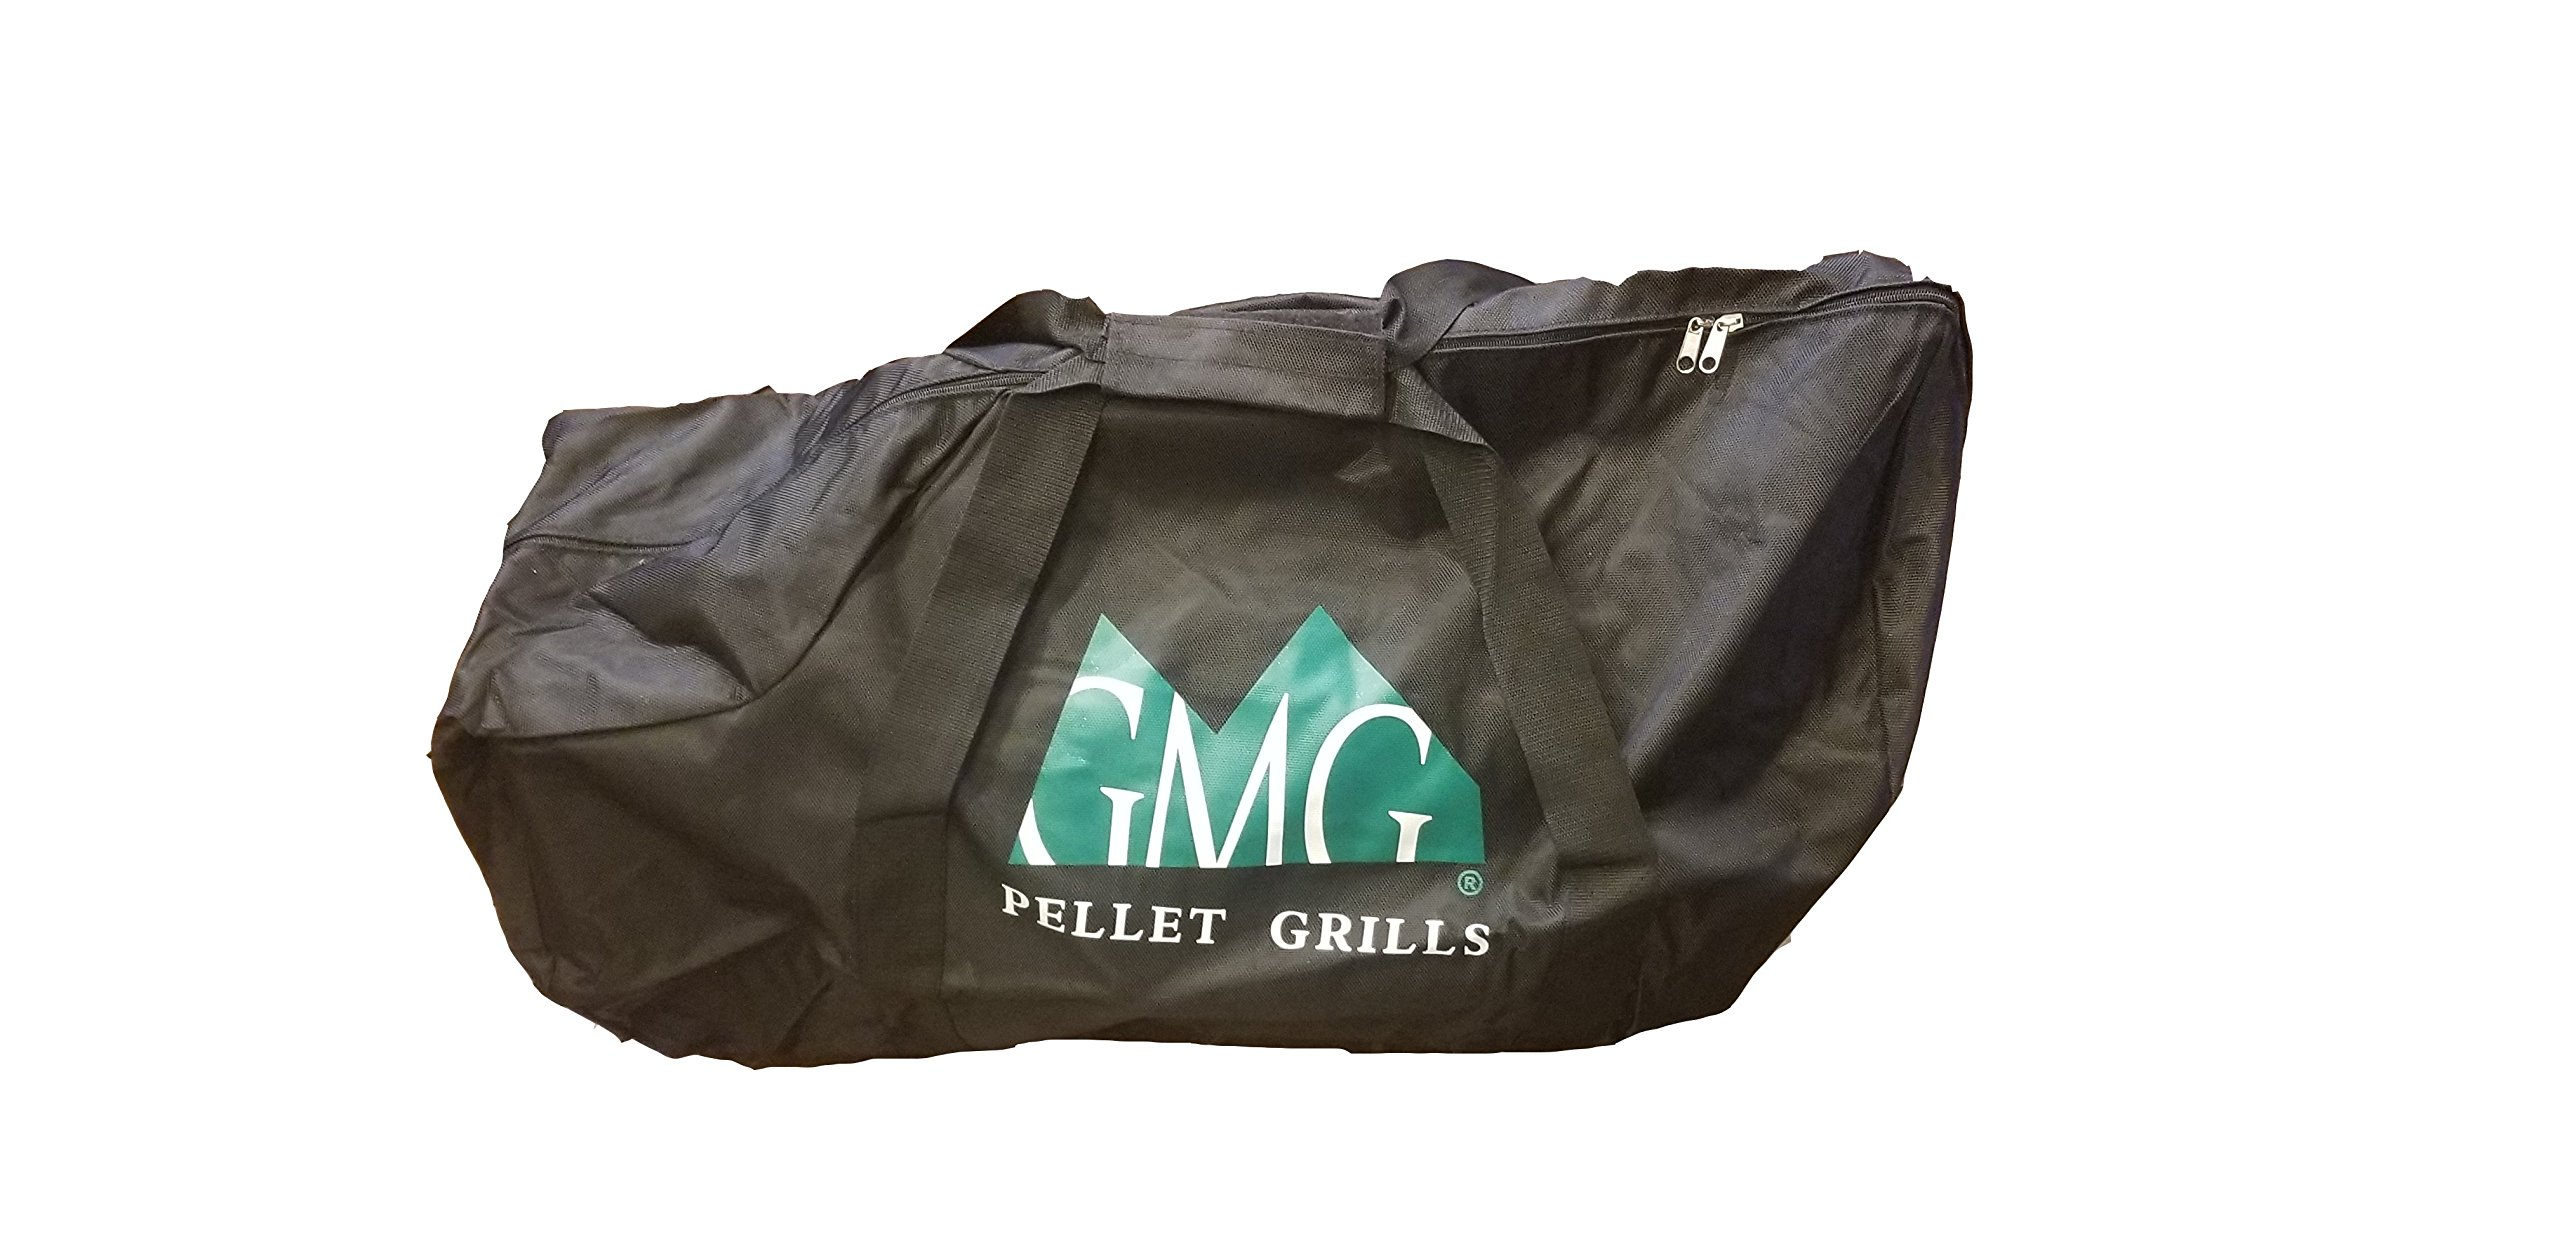 Pellethead GMG Davy Crockett Starter Package